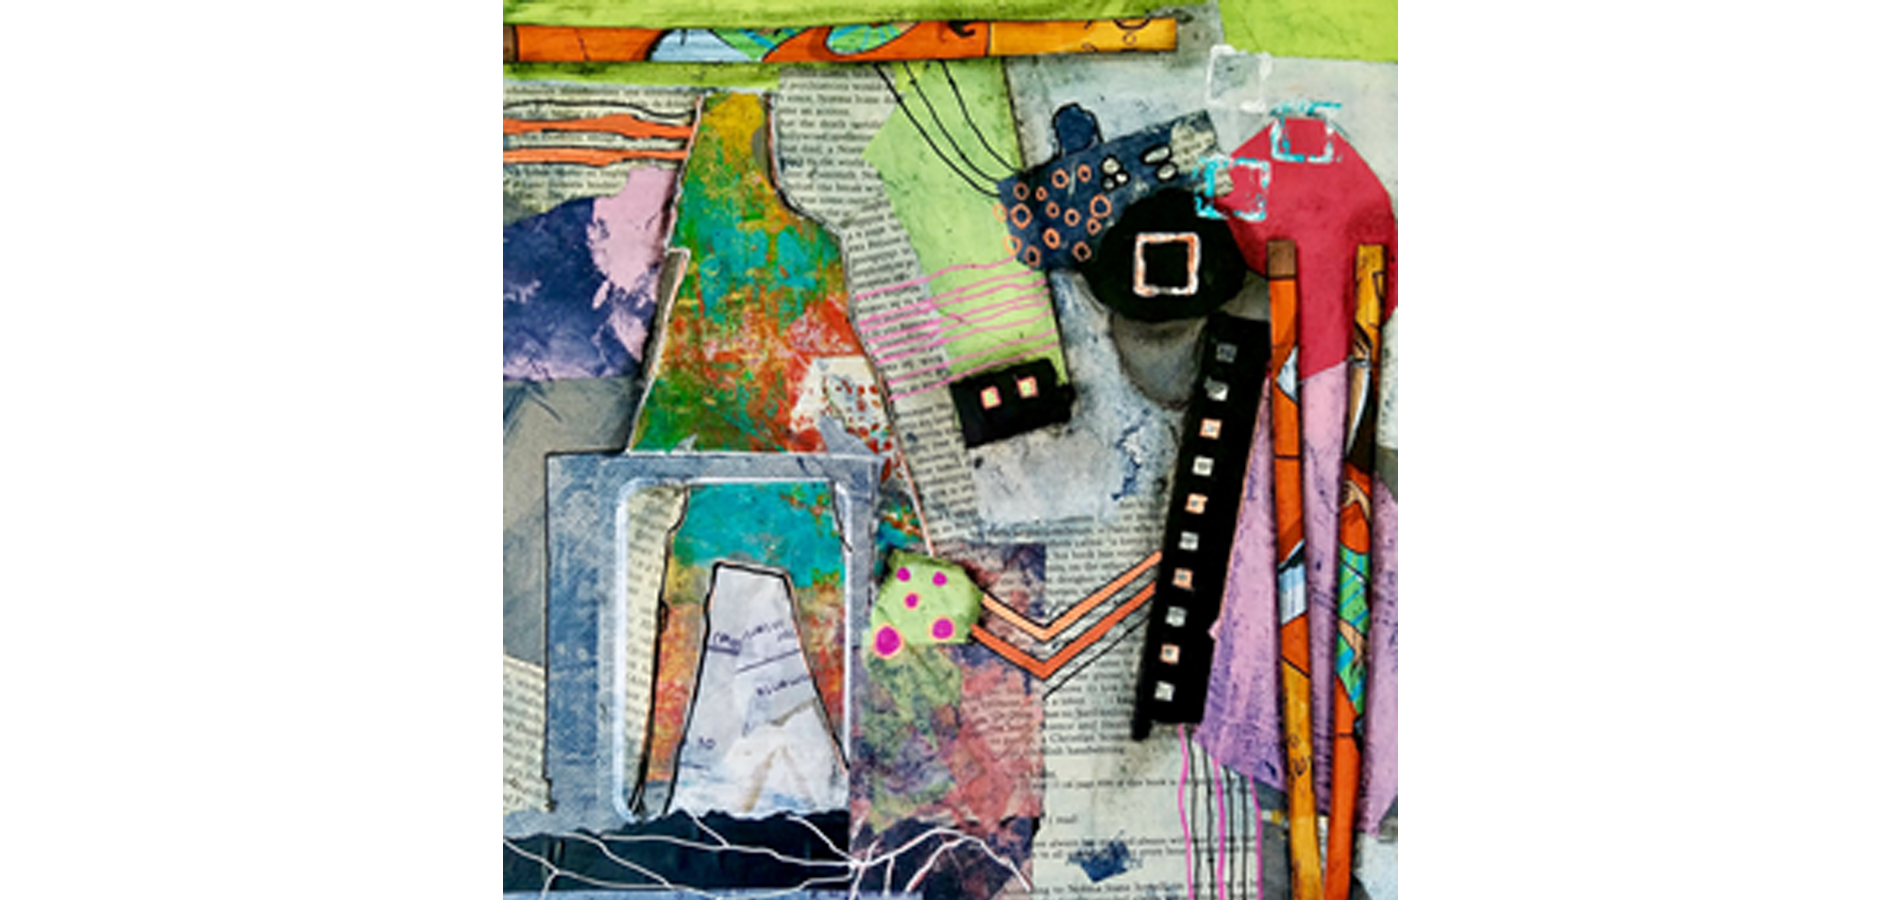 Discover and Explore Mixed Media